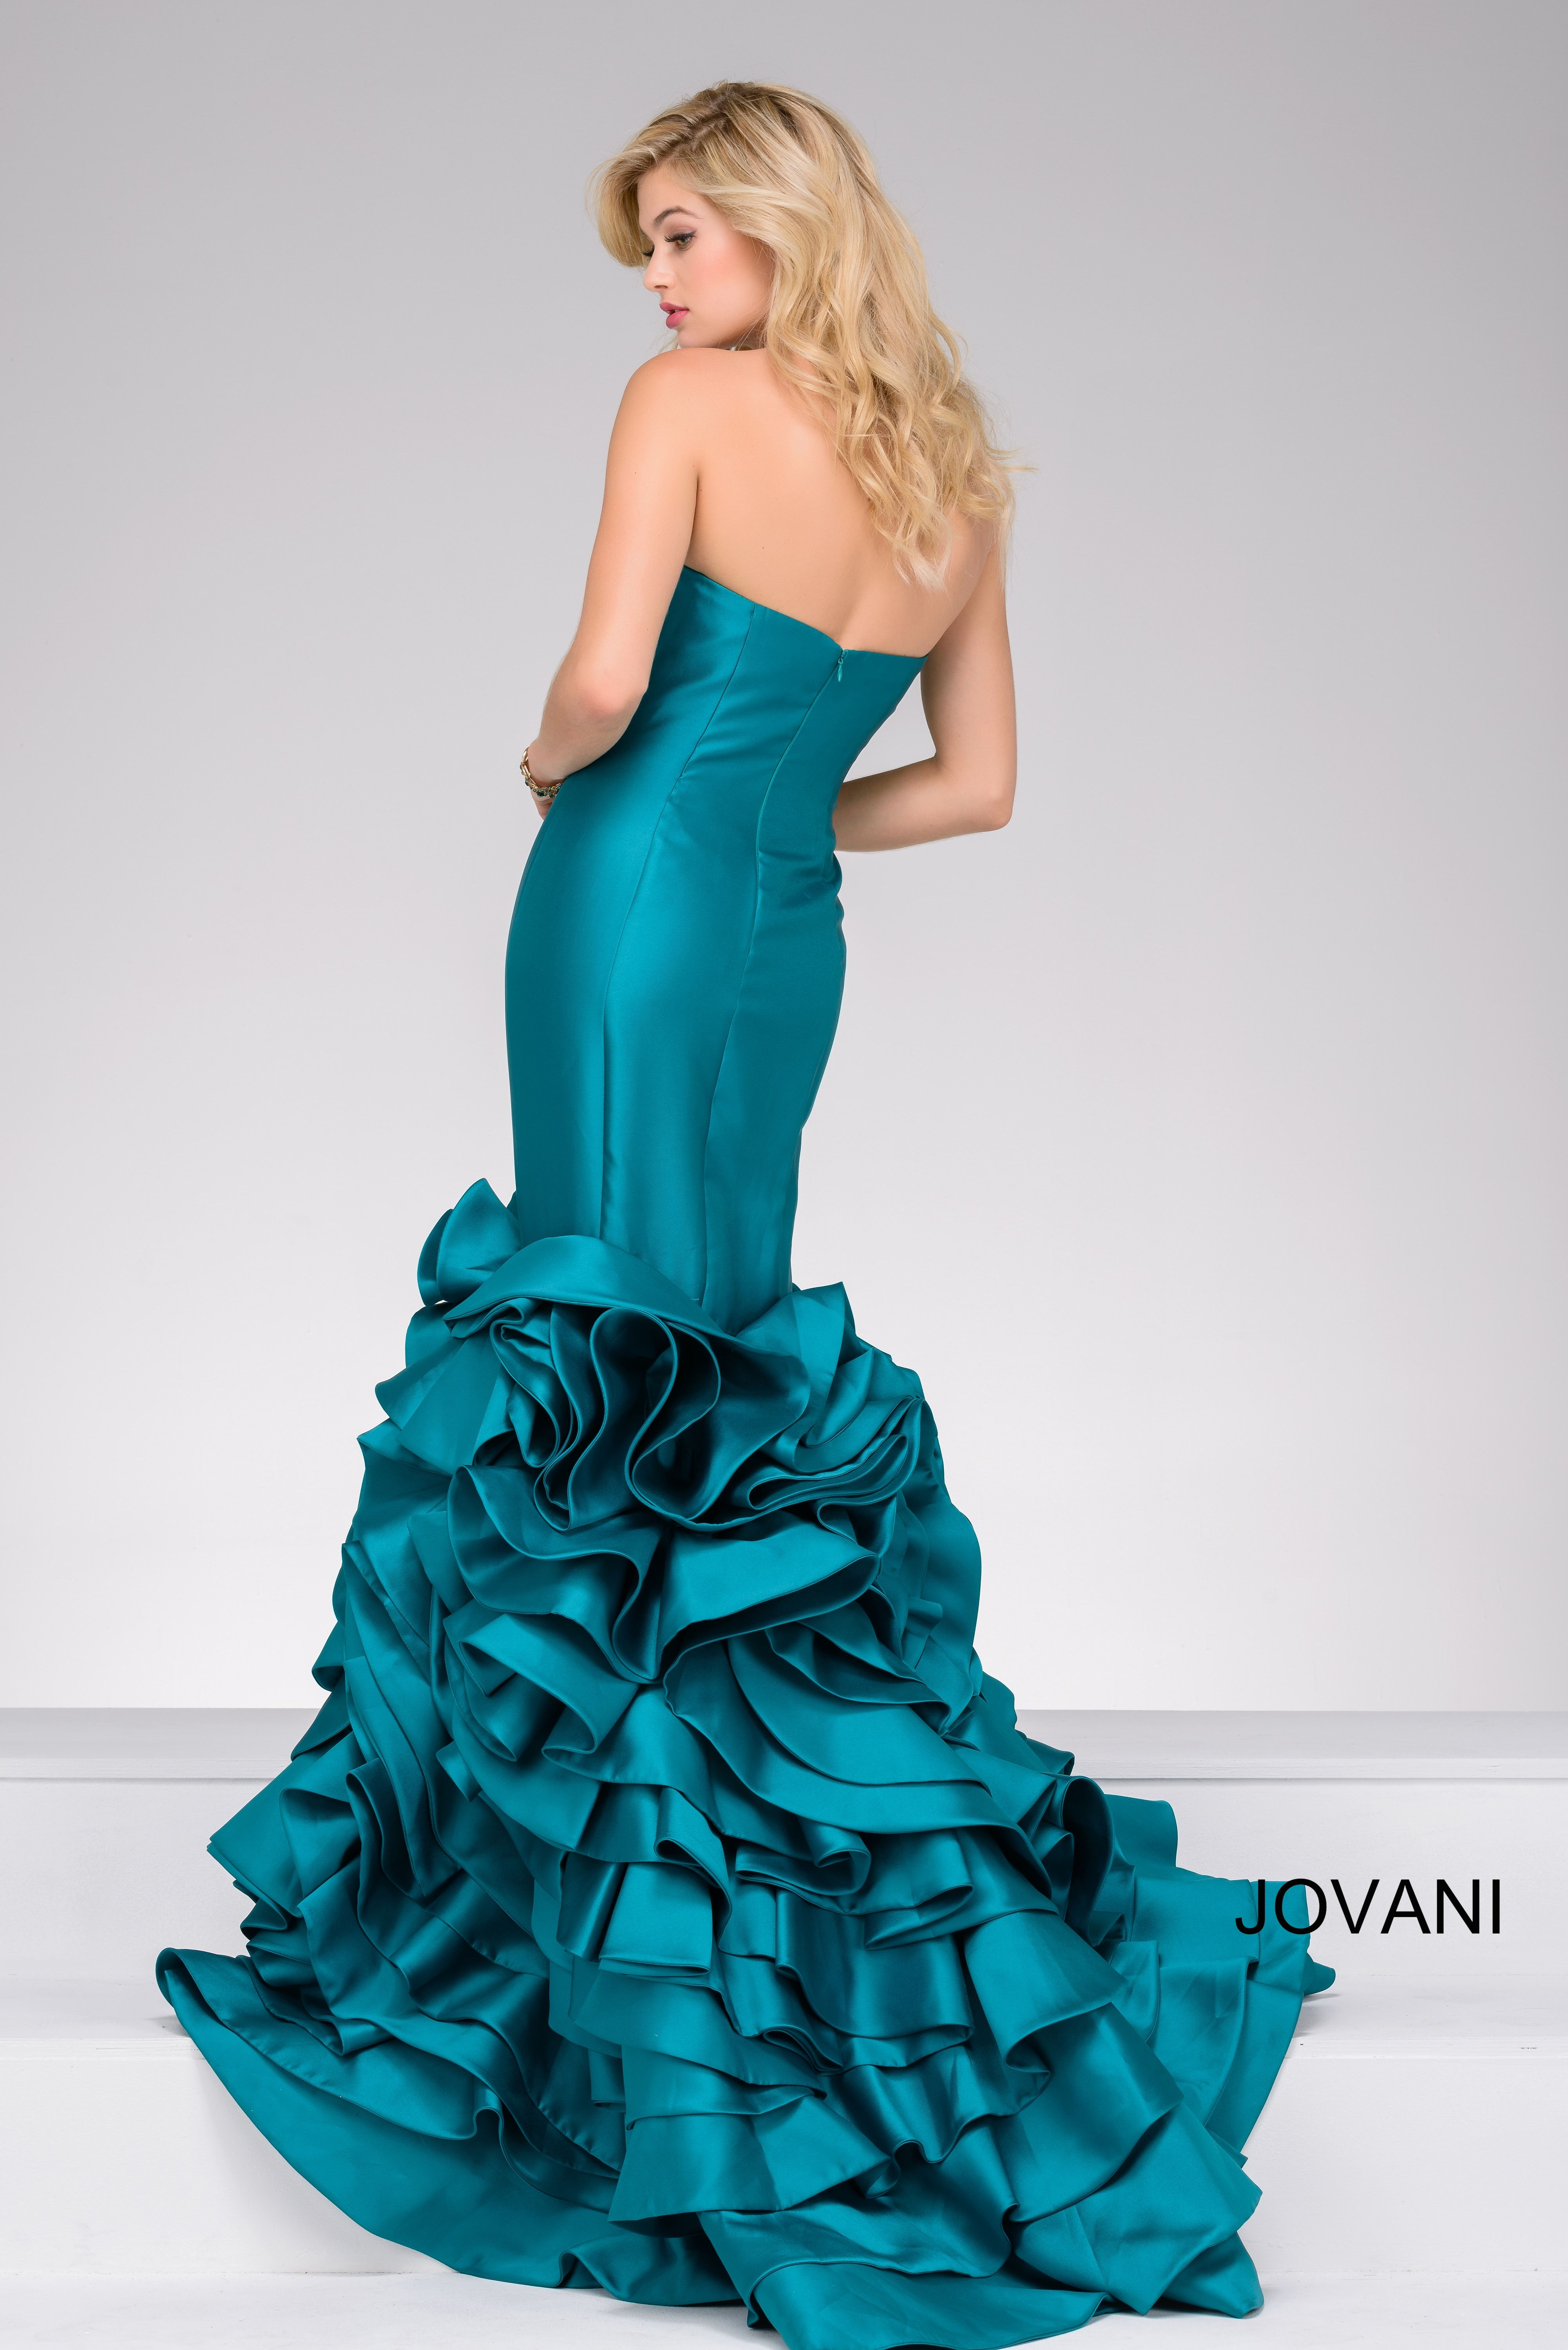 Fancy Prom Dresses Ft Worth Tx Frieze - Colorful Wedding Dress Ideas ...